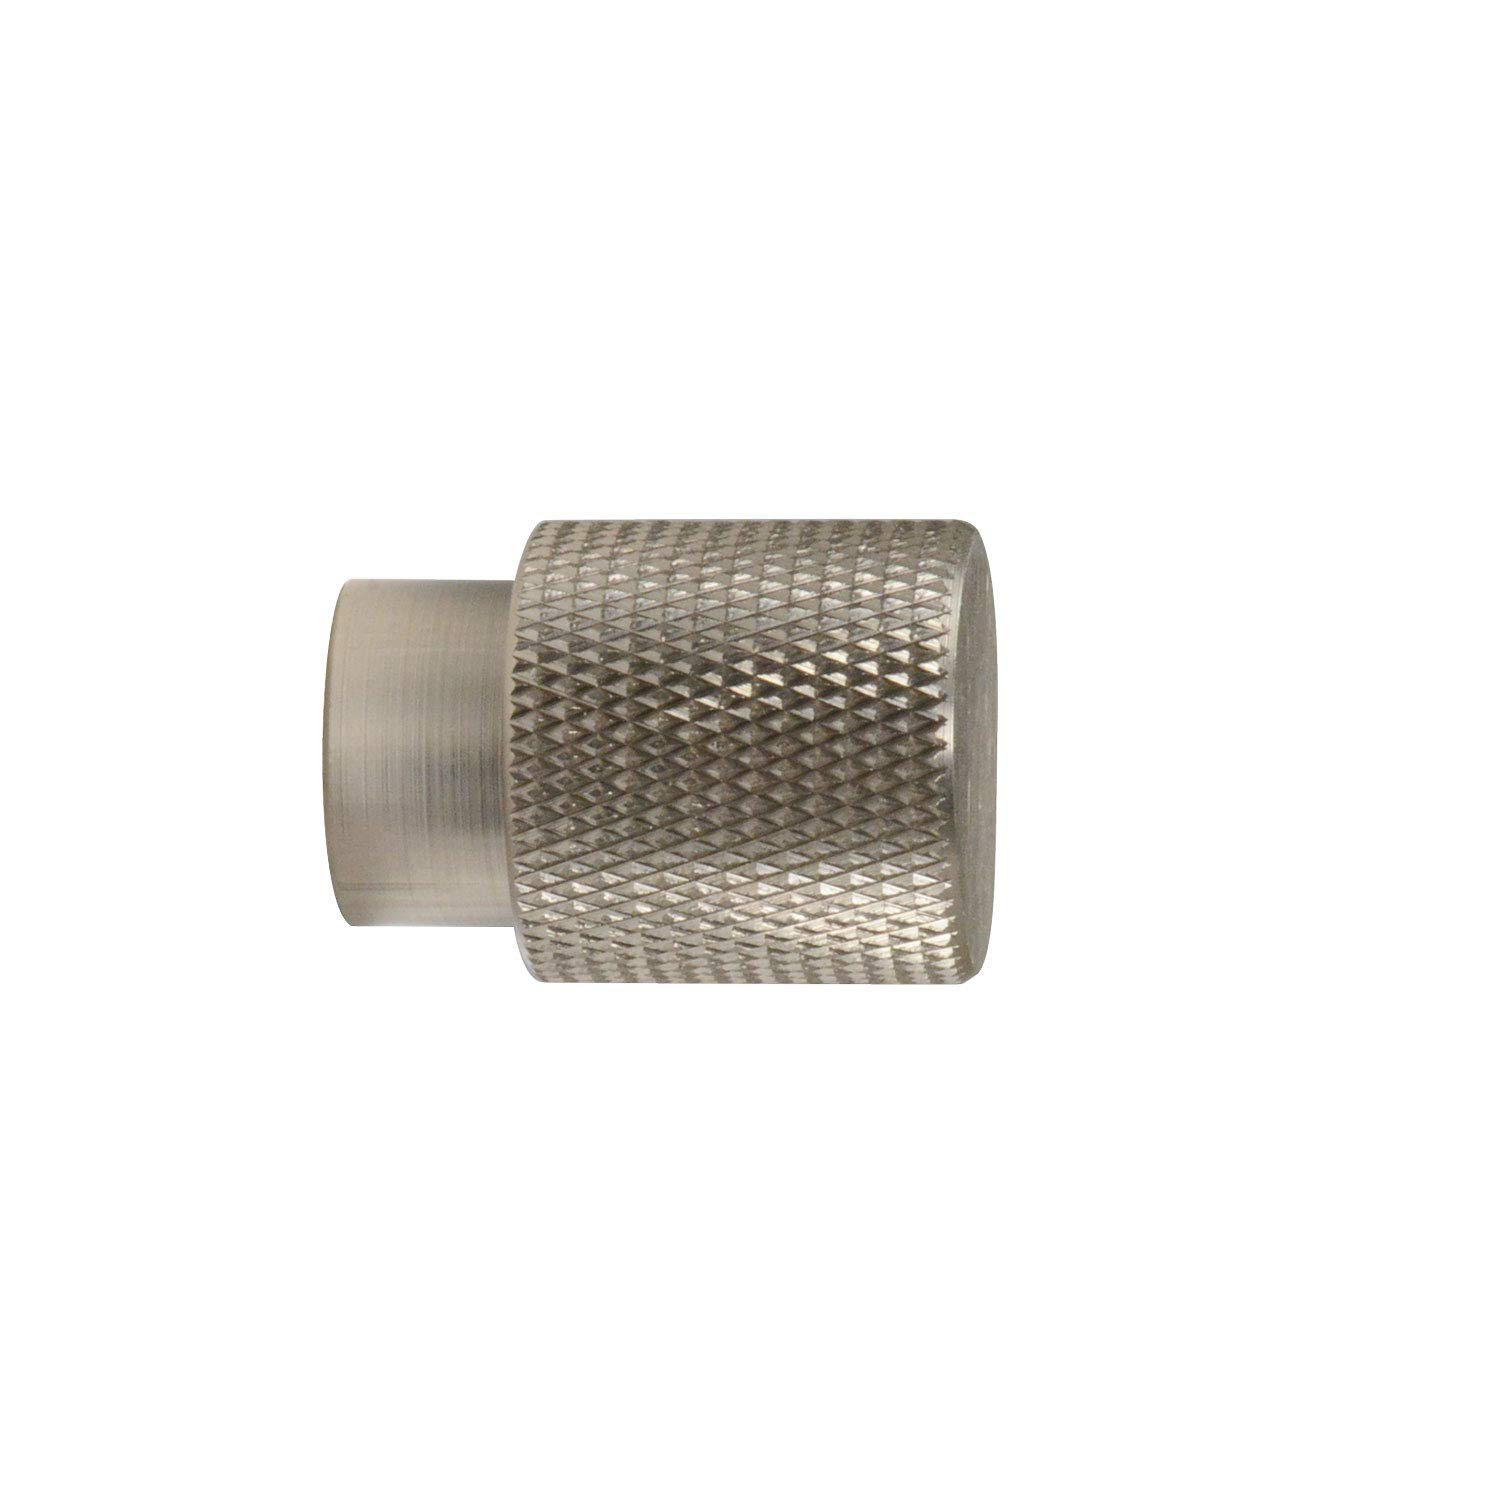 #6500 CKP Brand Linear Aluminum 3/4 in. (20mm) Knurled Knob, Brushed Nickel - 25 Pack by CKP (Image #3)